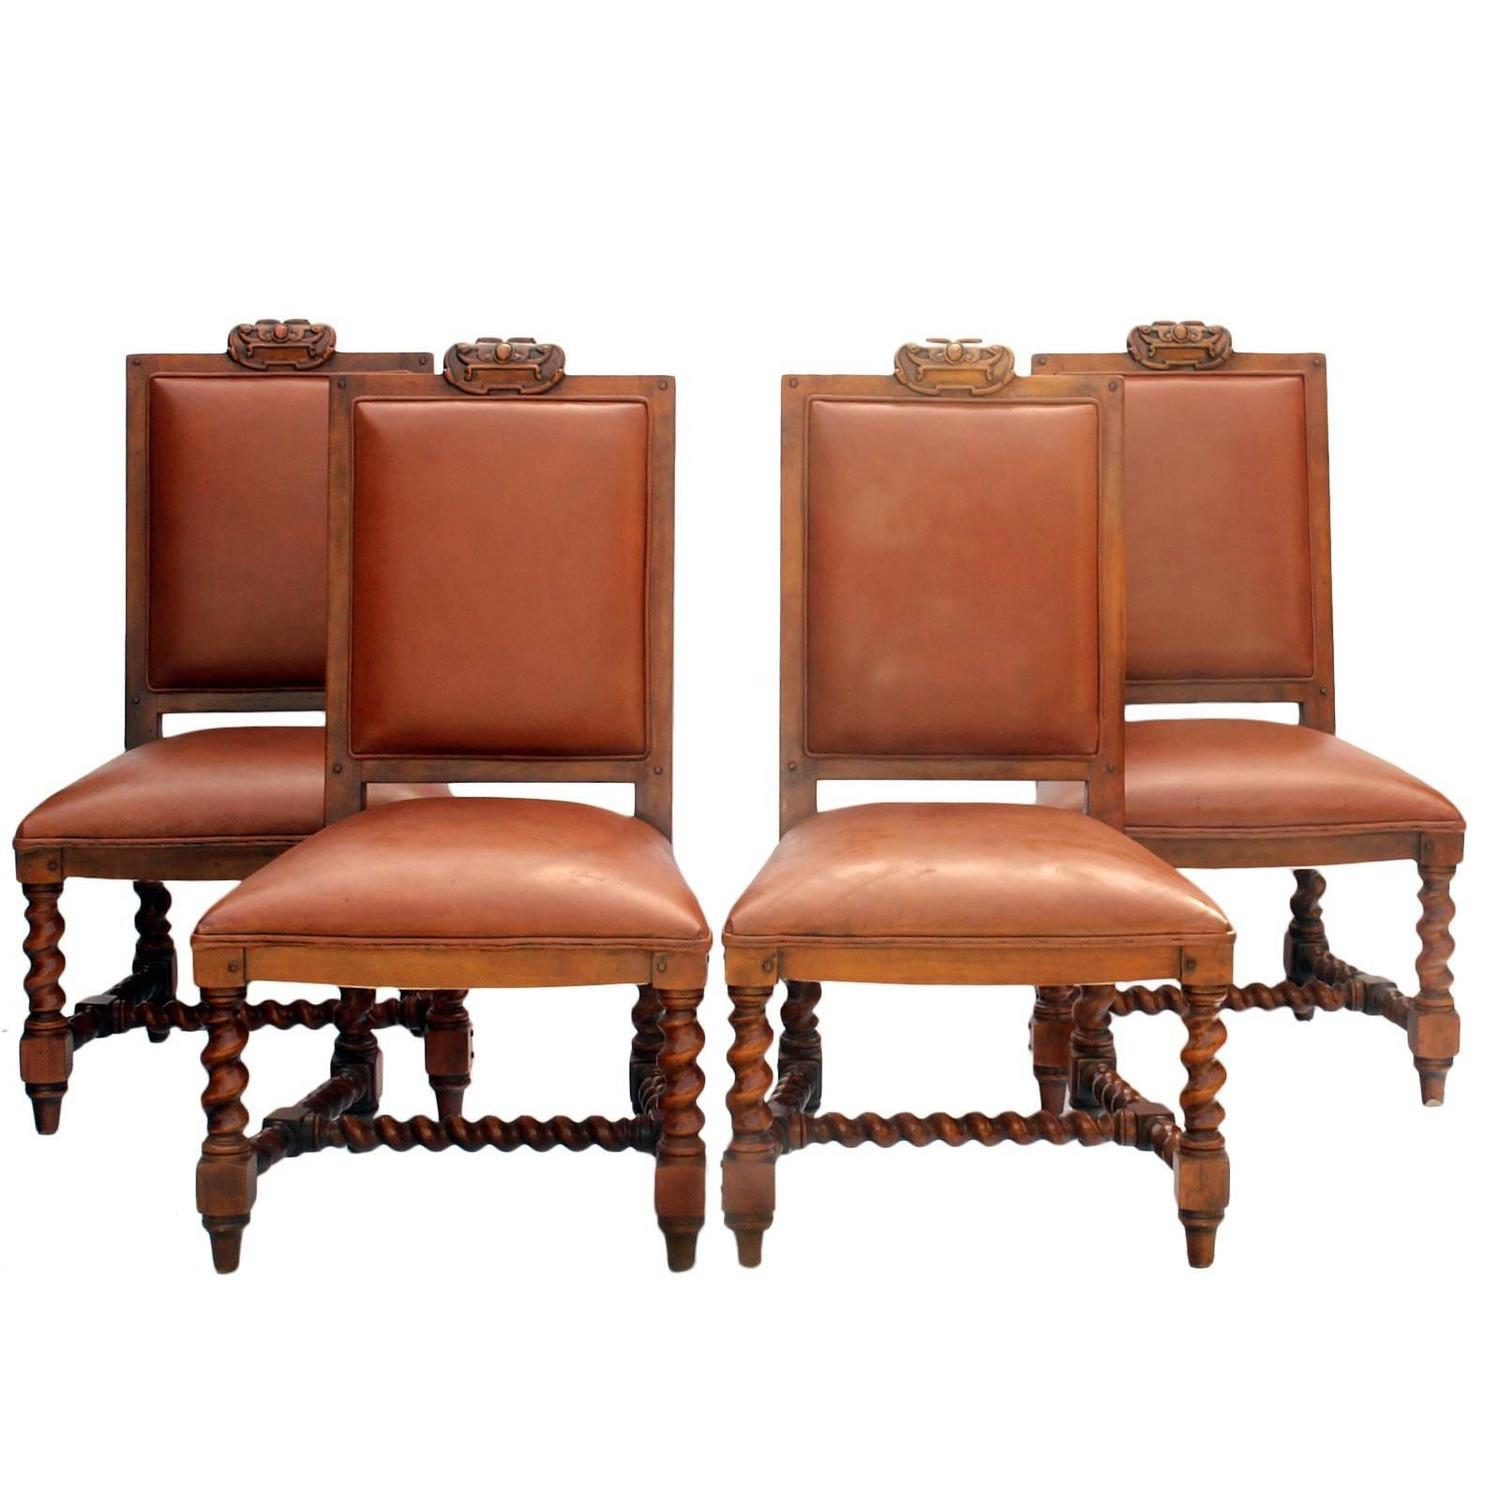 ralph lauren chair buffalo leather four dining chairs by for sale at 1stdibs